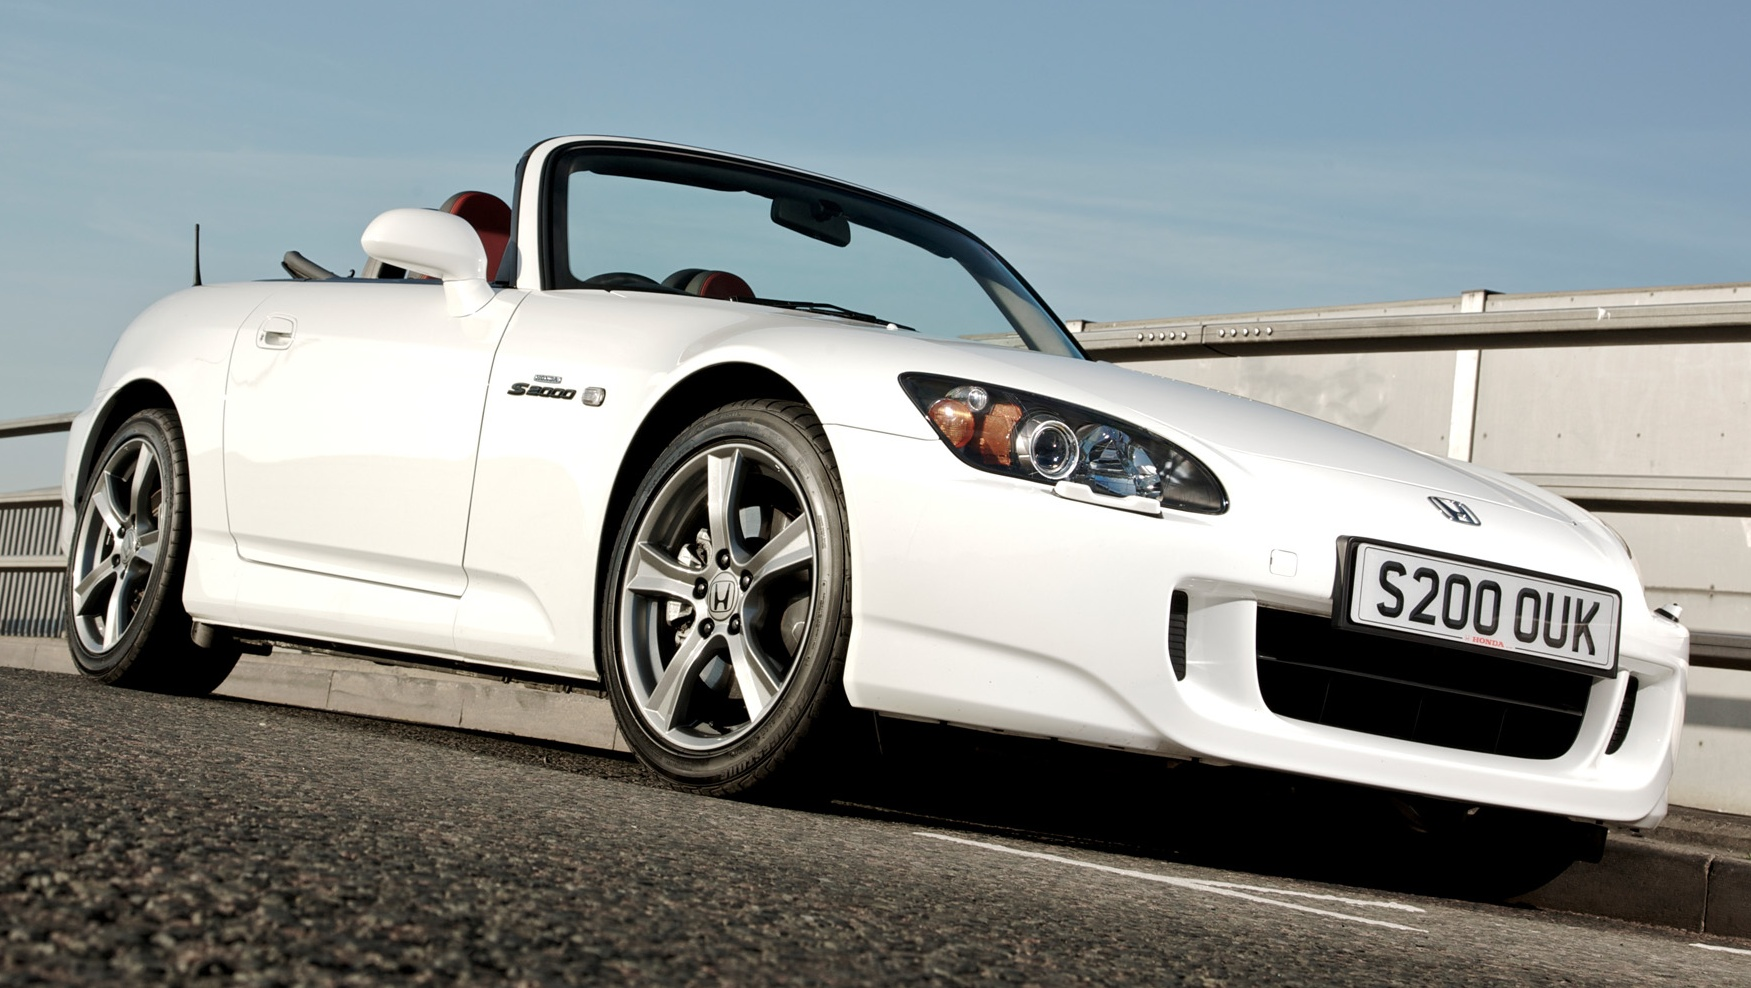 Back to Story: VIDEO: 2009 Honda S2000 Edition 100 showcased